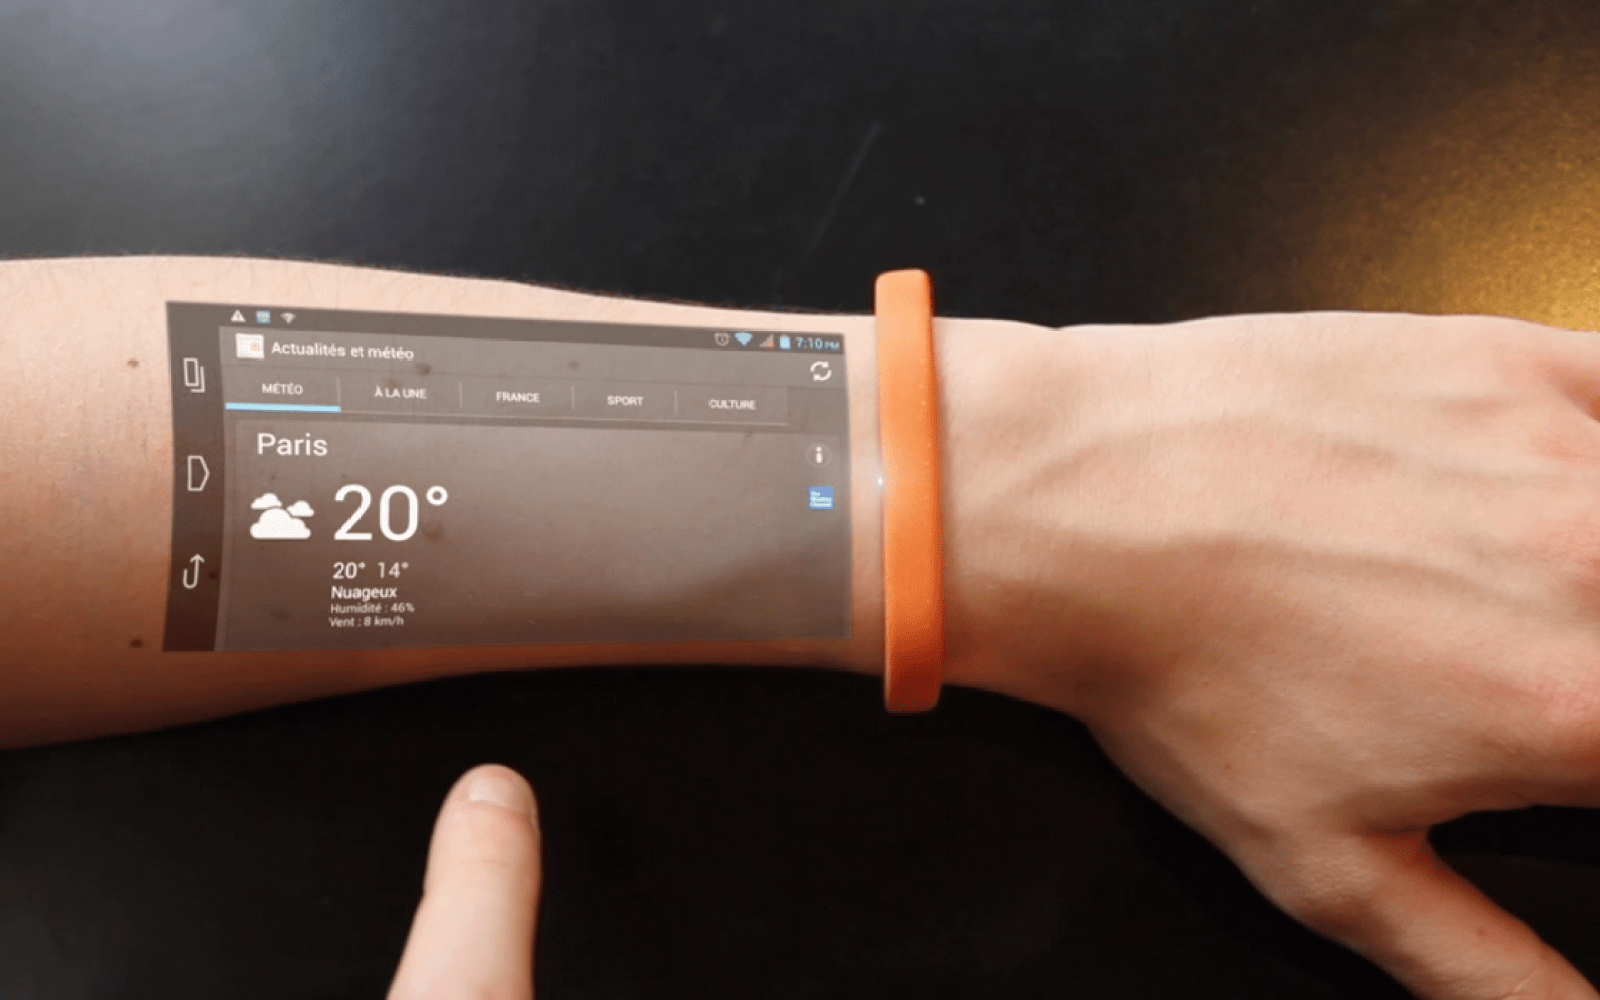 The Cicret Bracelet puts a smartphone display on your arm with full touchscreen functionality